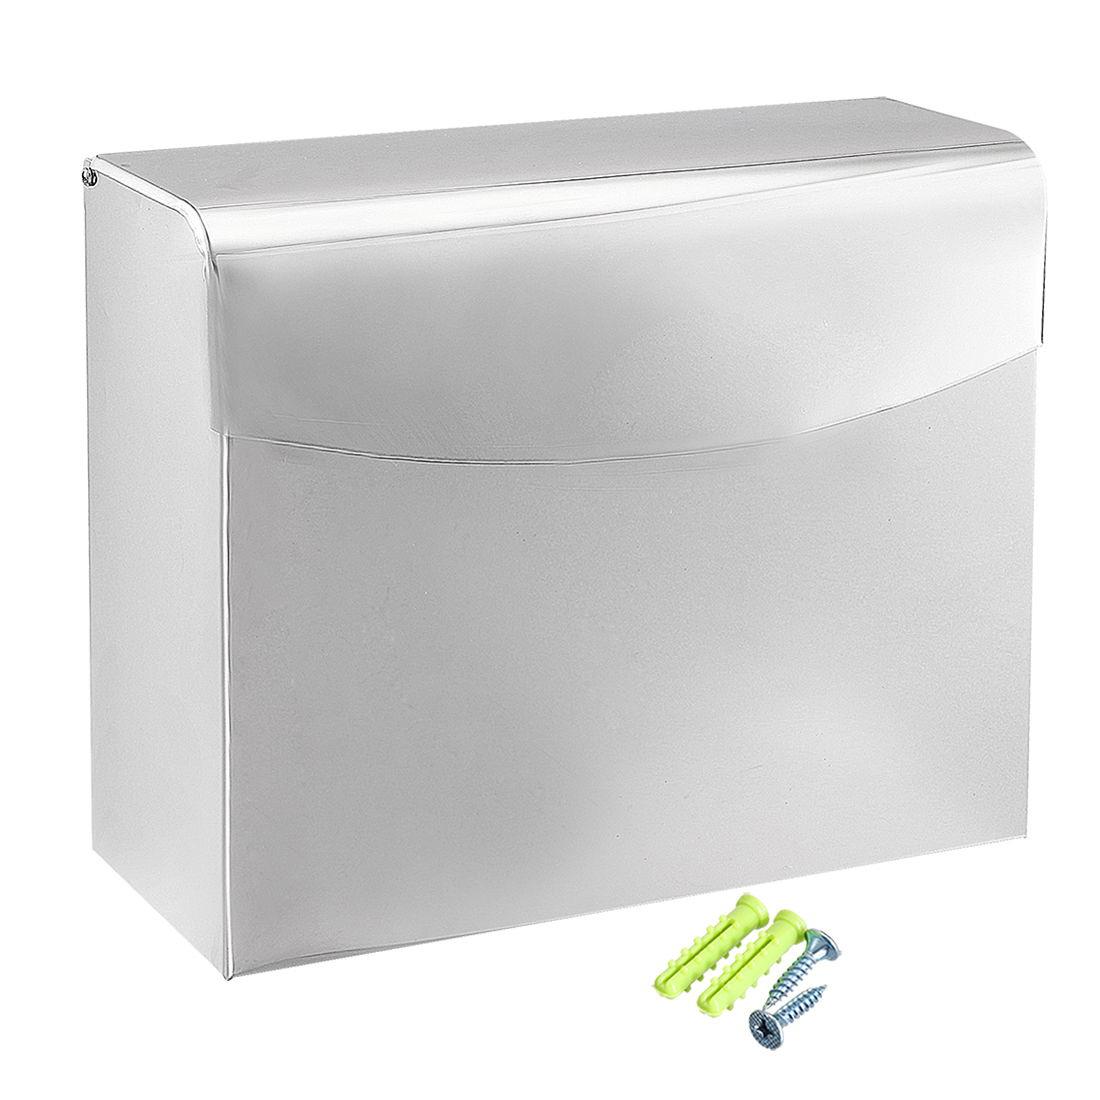 238mmx92mmx195mm Stainless Steel Wall-Mounted Toilet Paper Holder w Cover